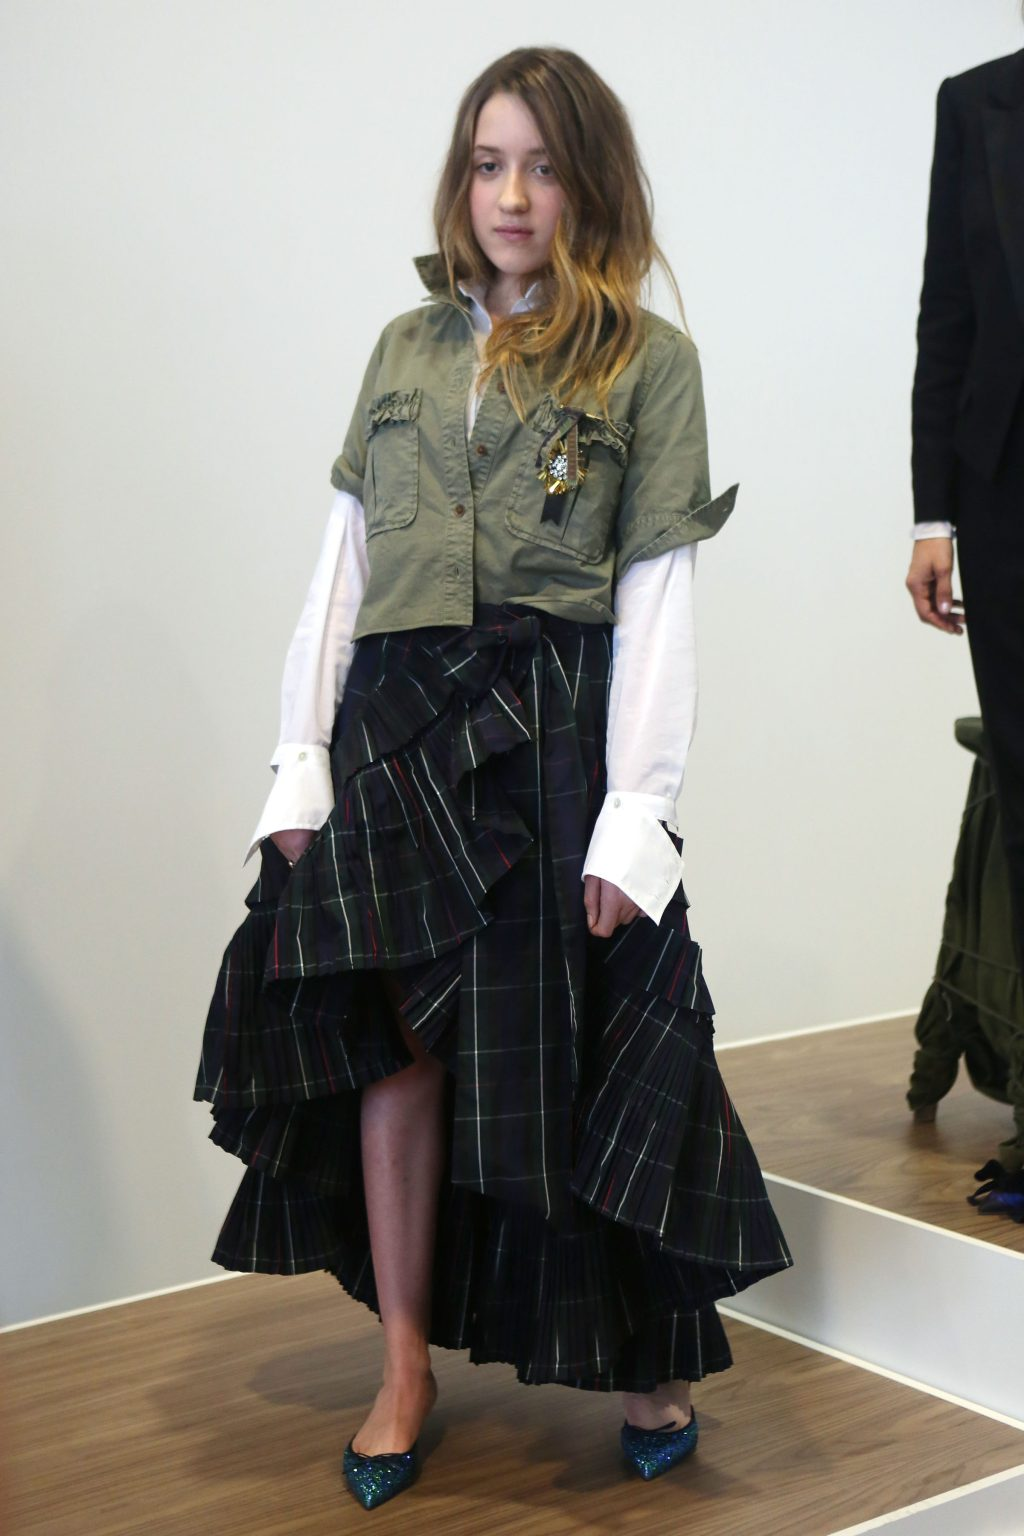 Mathilda Gianopoulos modeling at NYFW for J.Crew